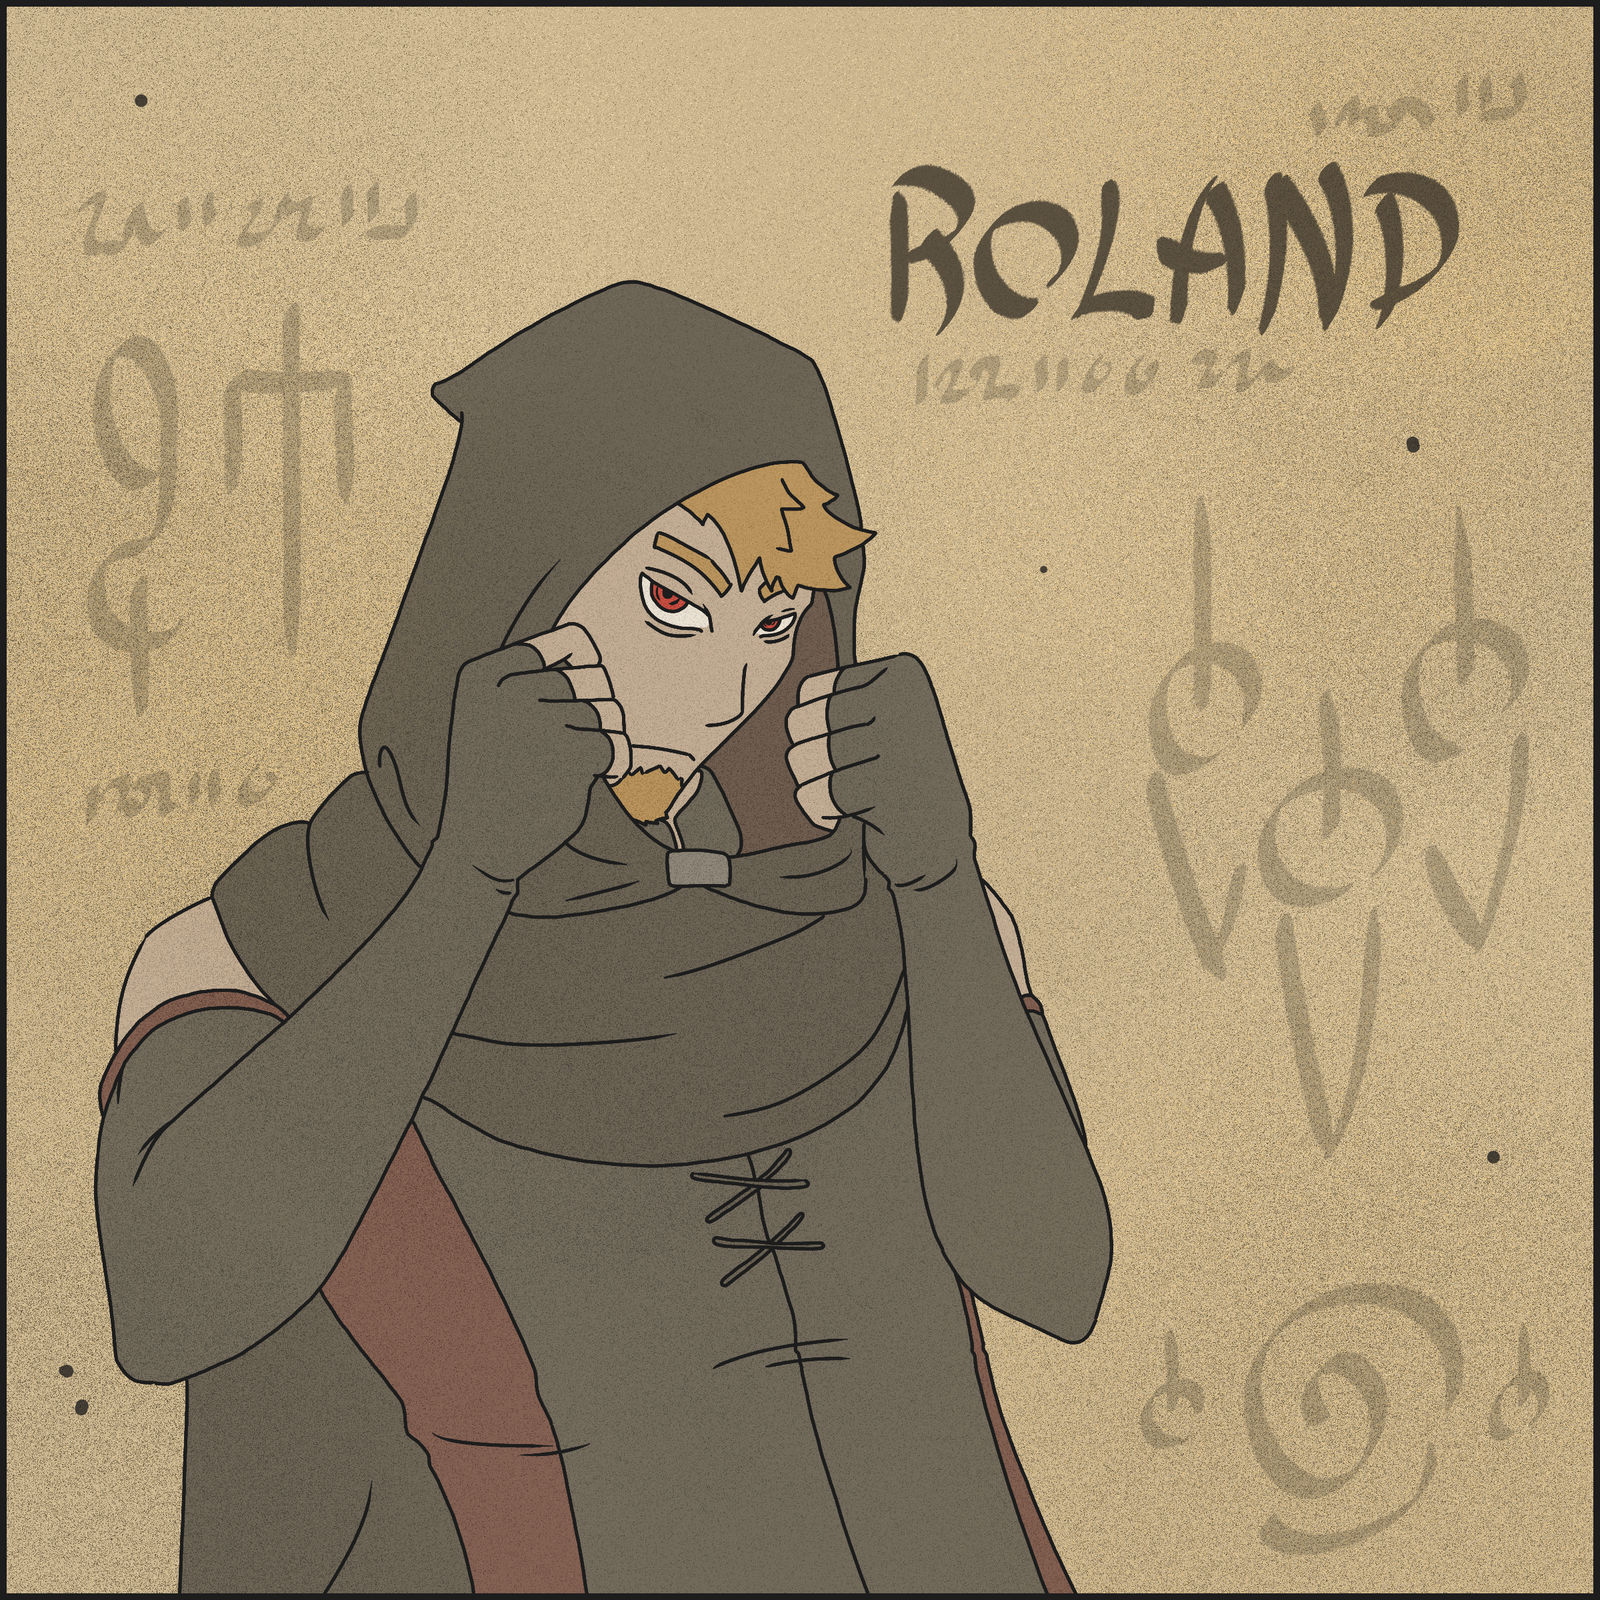 Roland ICON by chevy1616